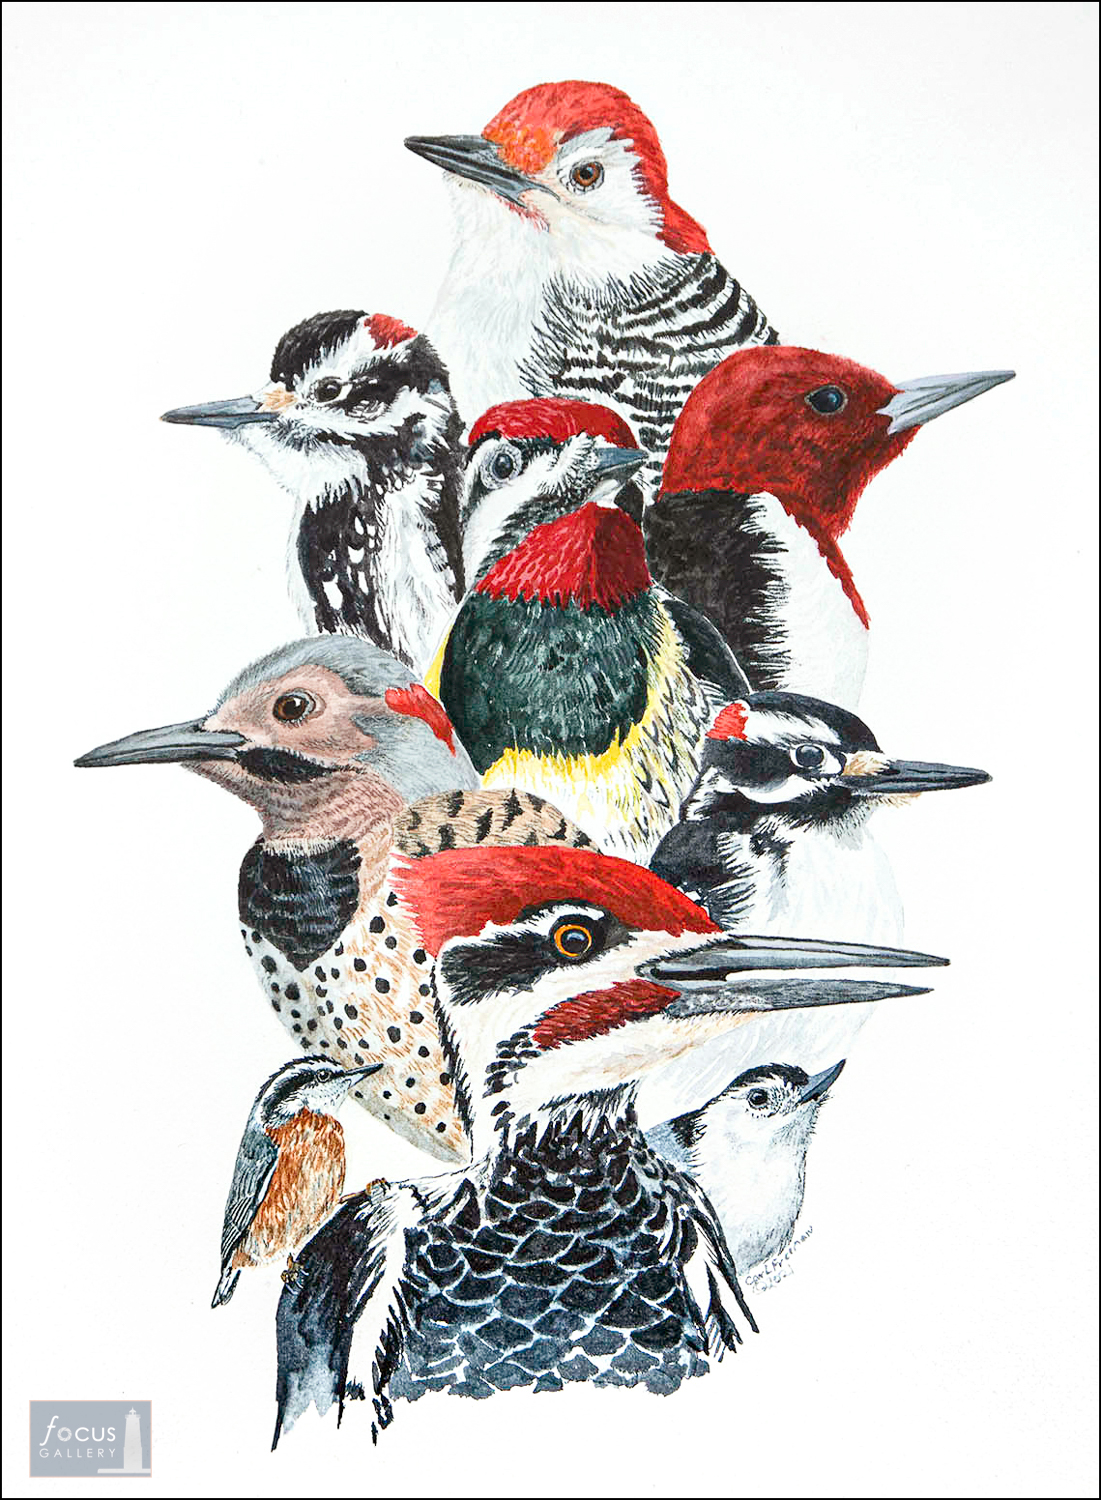 Watercolor collage of different kinds of woodpeckers.